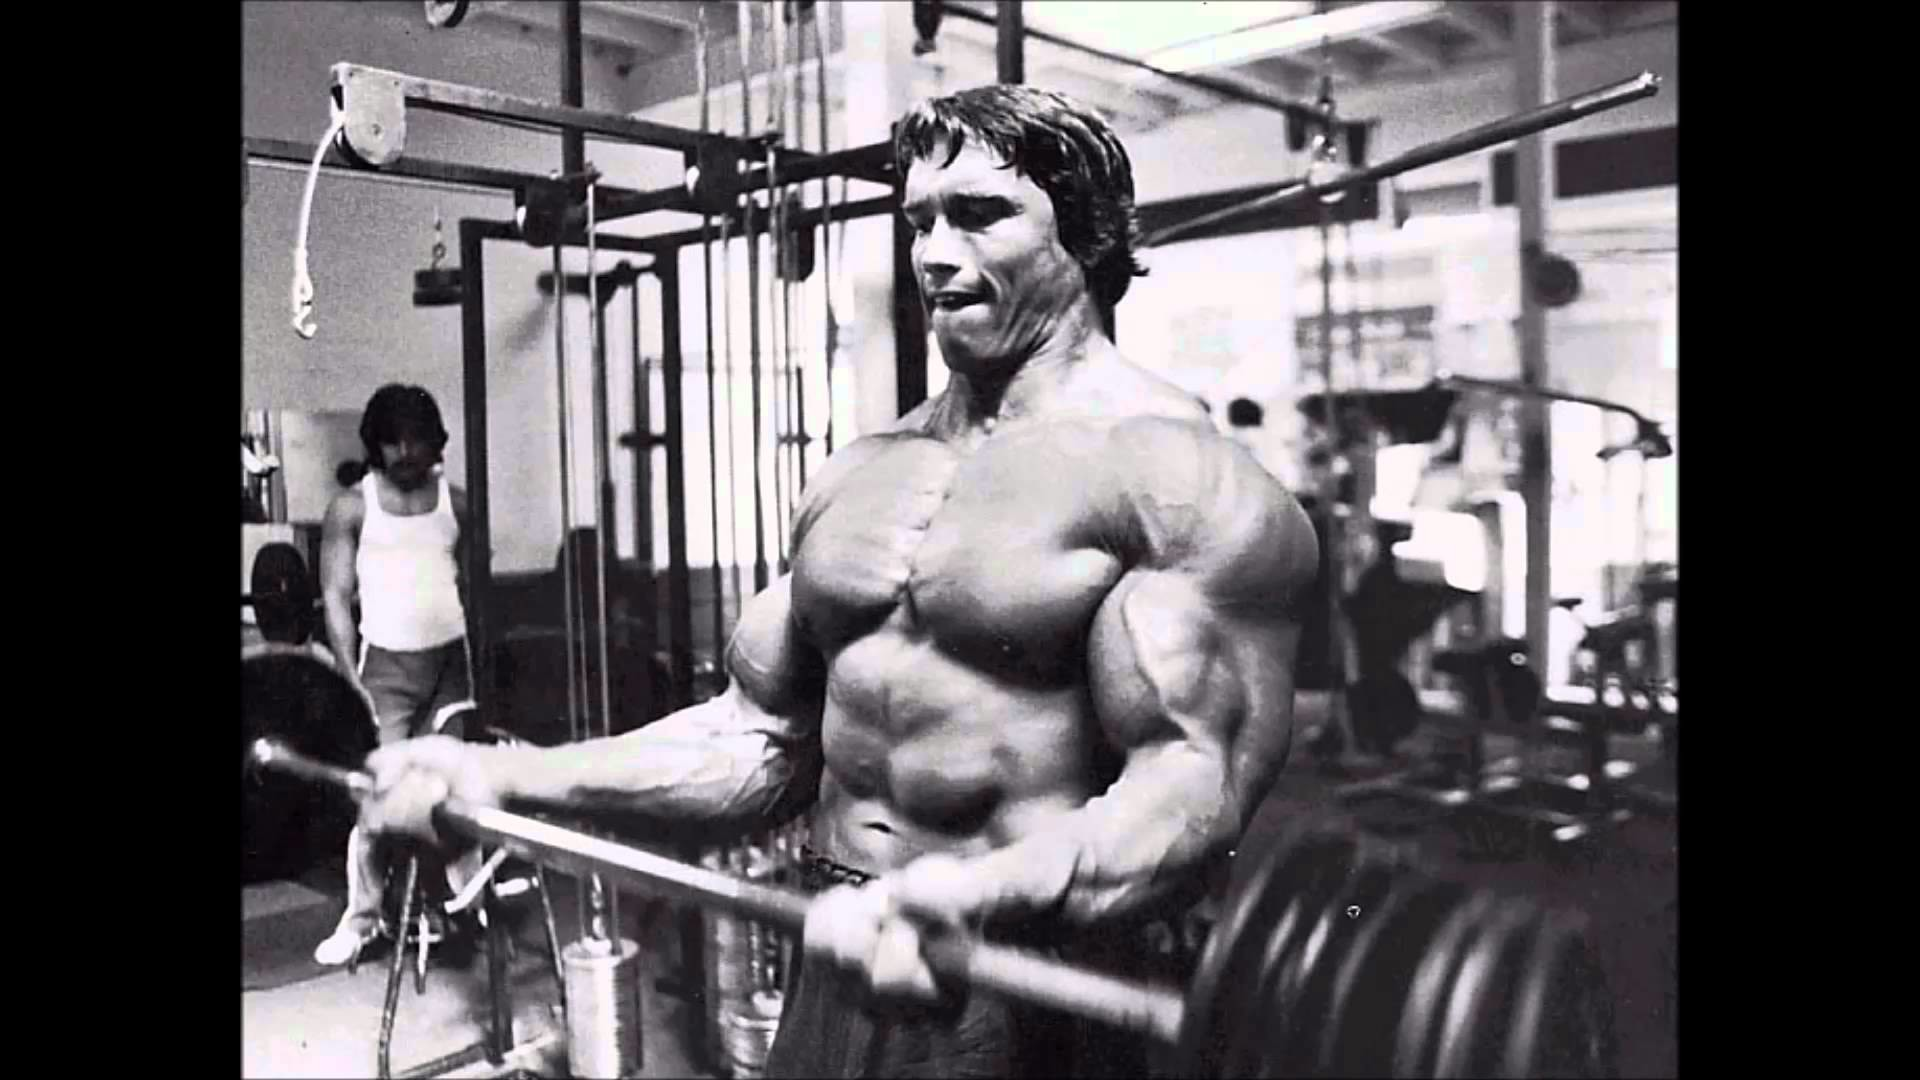 Arnold Motivational Wallpapers (79+ images)